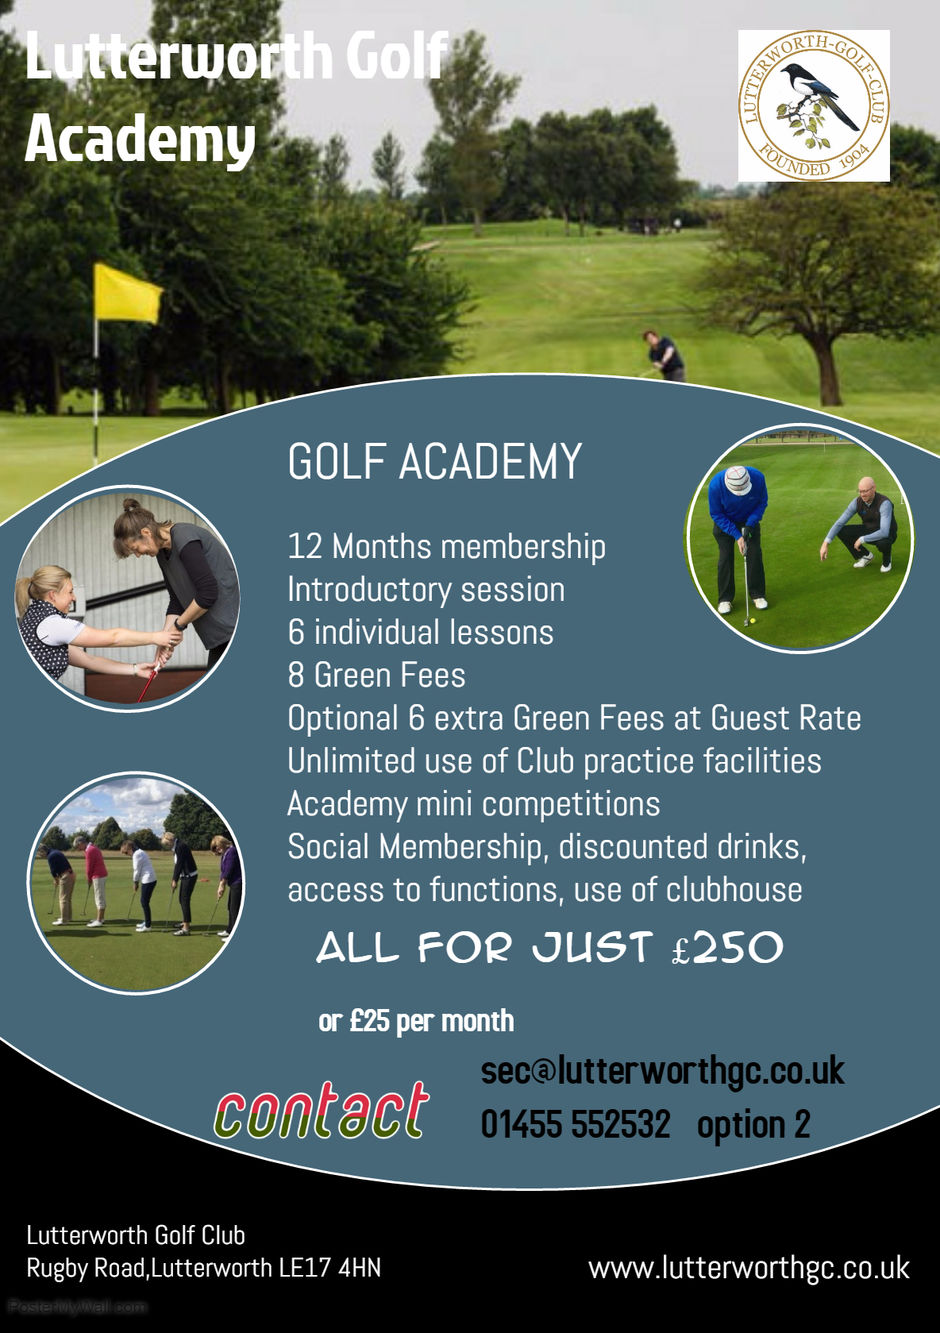 Lutterworth Golf Club Academy Membership